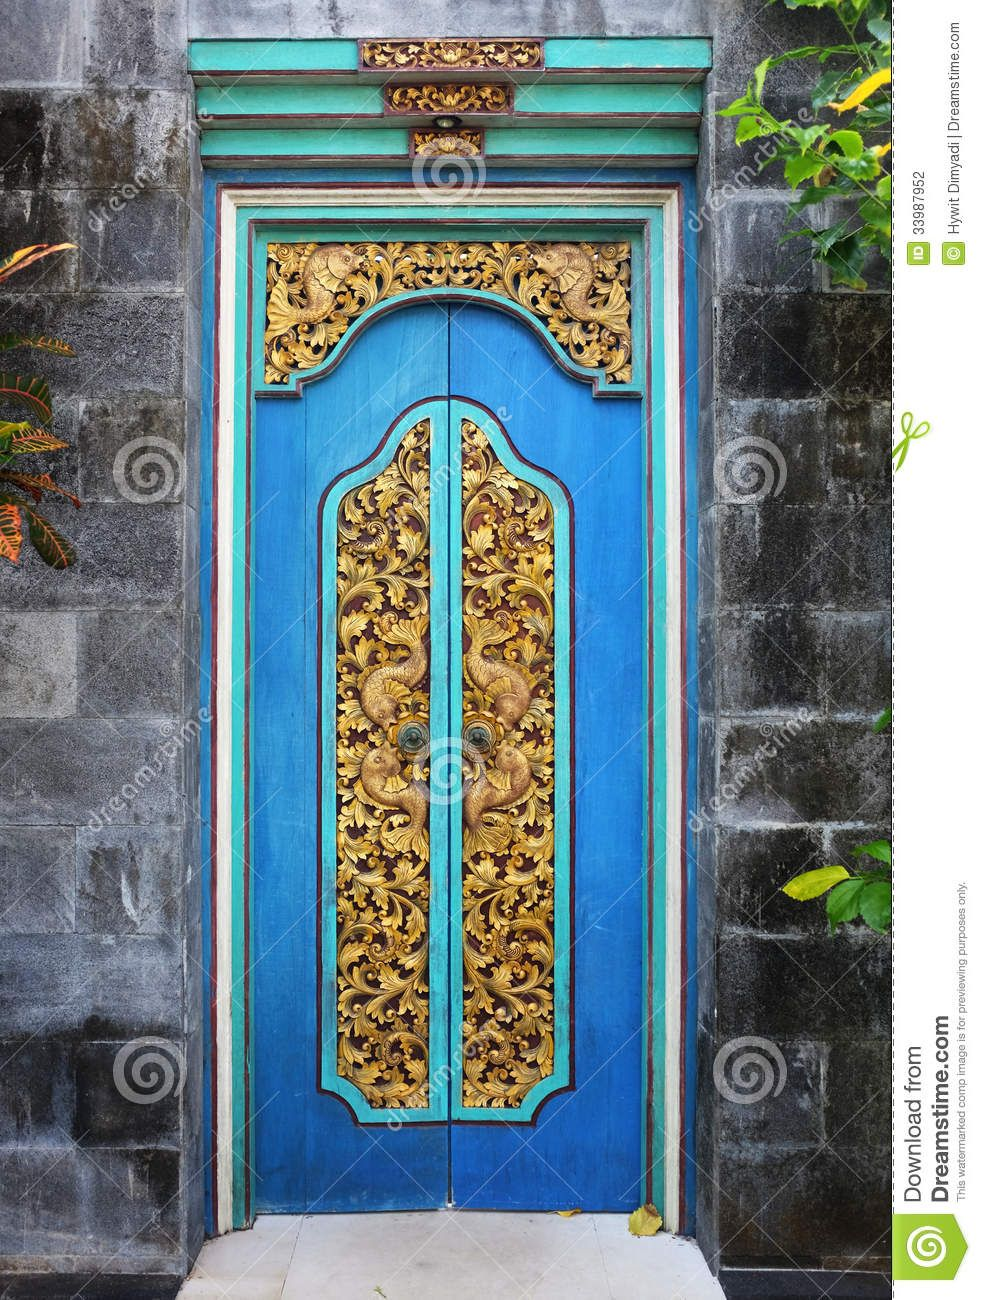 Bali Wood Carved doors & Bali Wood Carved doors | Wanderlust | Pinterest | Doors and Architecture